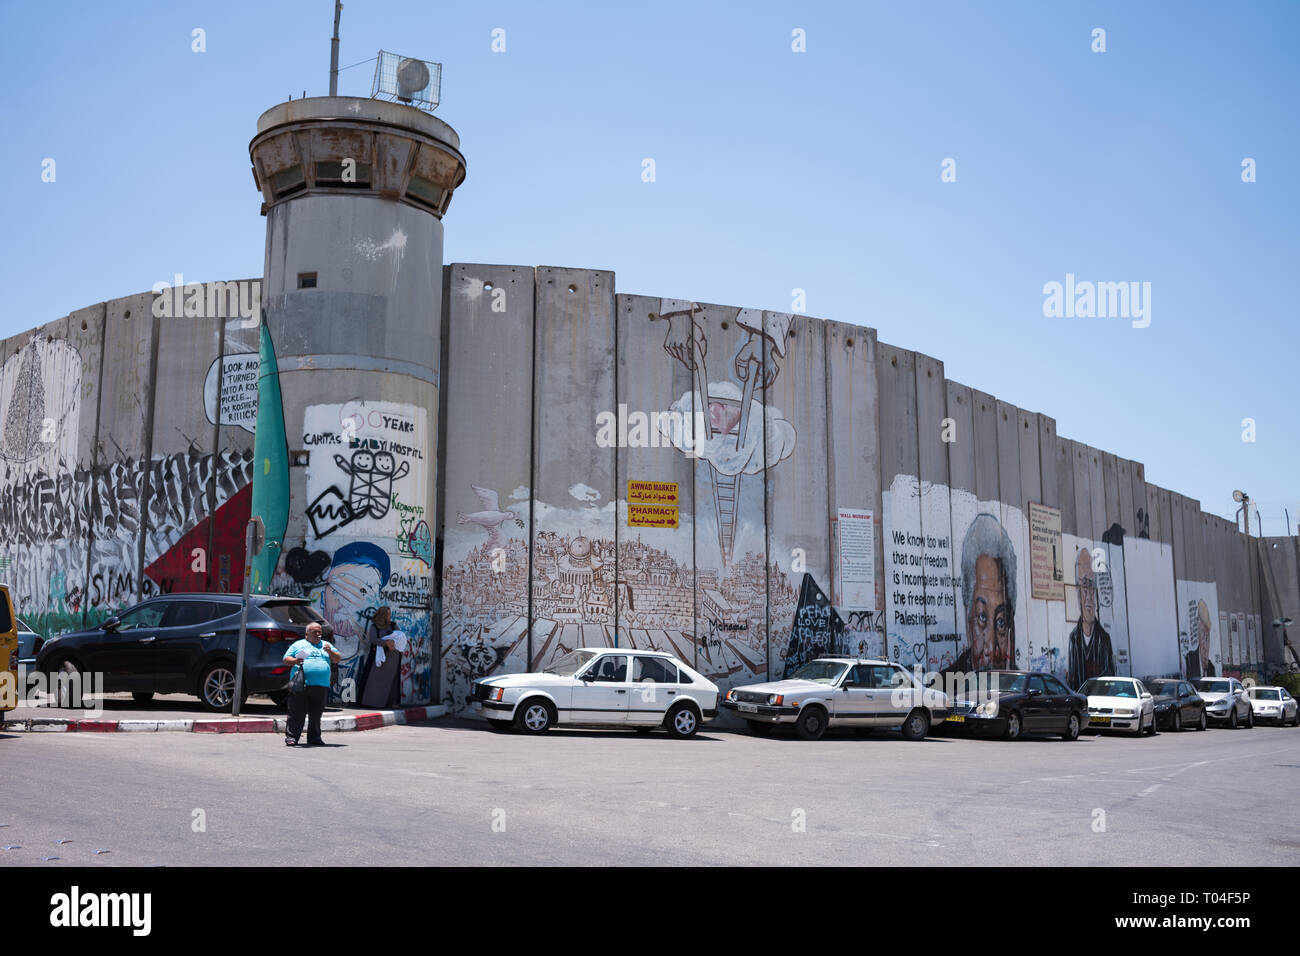 Activist graffiti adorns the Israeli separation wall in the West Bank town of Bethlehem - Stock Image